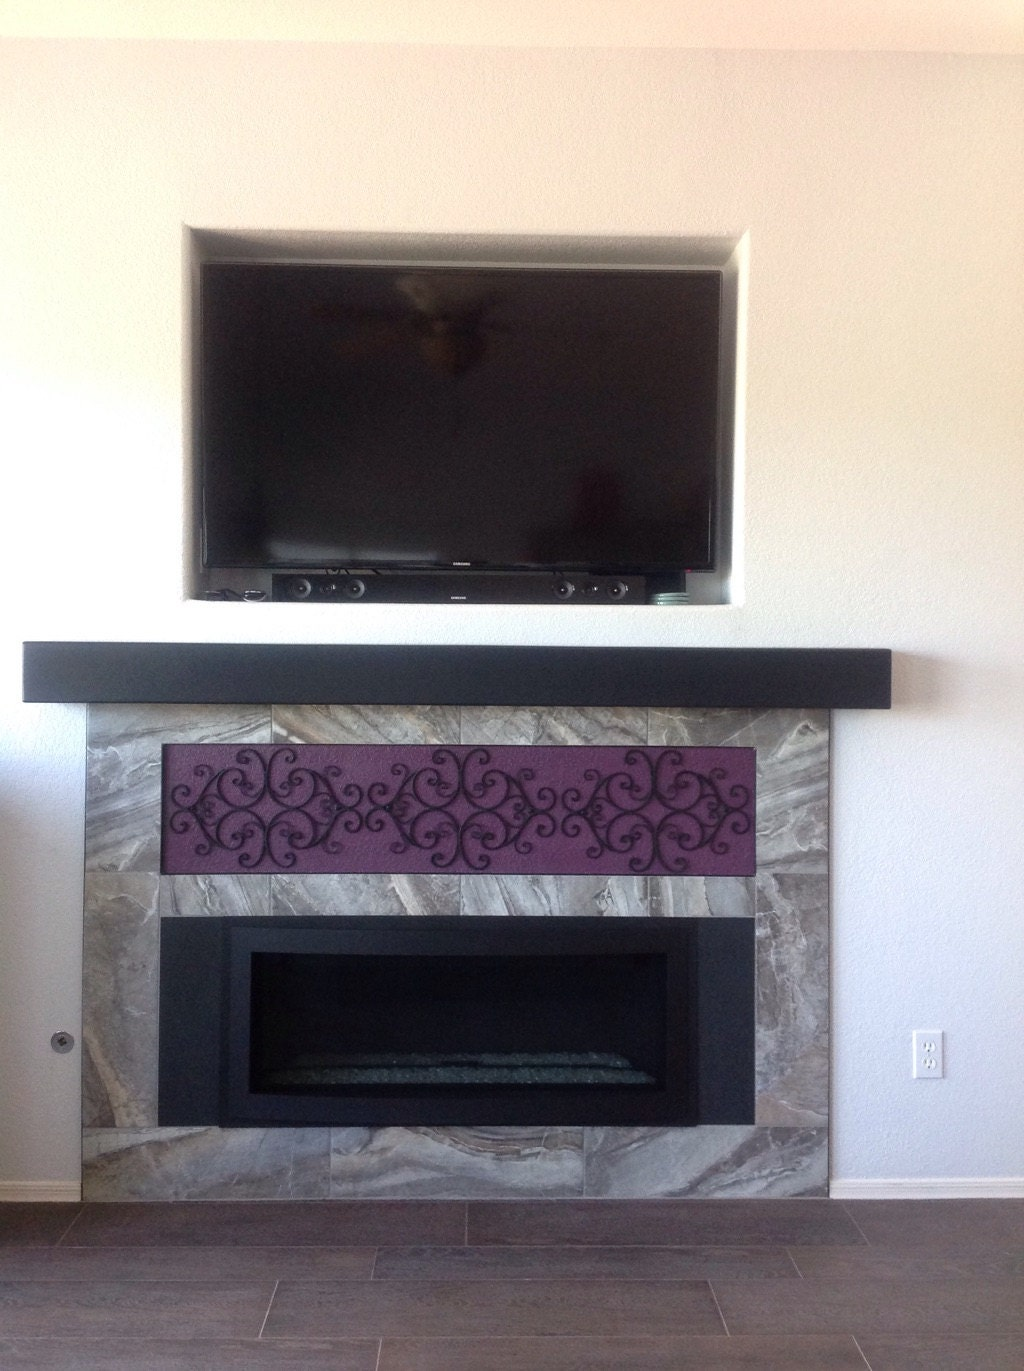 Fireplace Mantel Modern Wall Shelf  Custom hollow floating shelf . Look of a solid beam. Made out of plywood